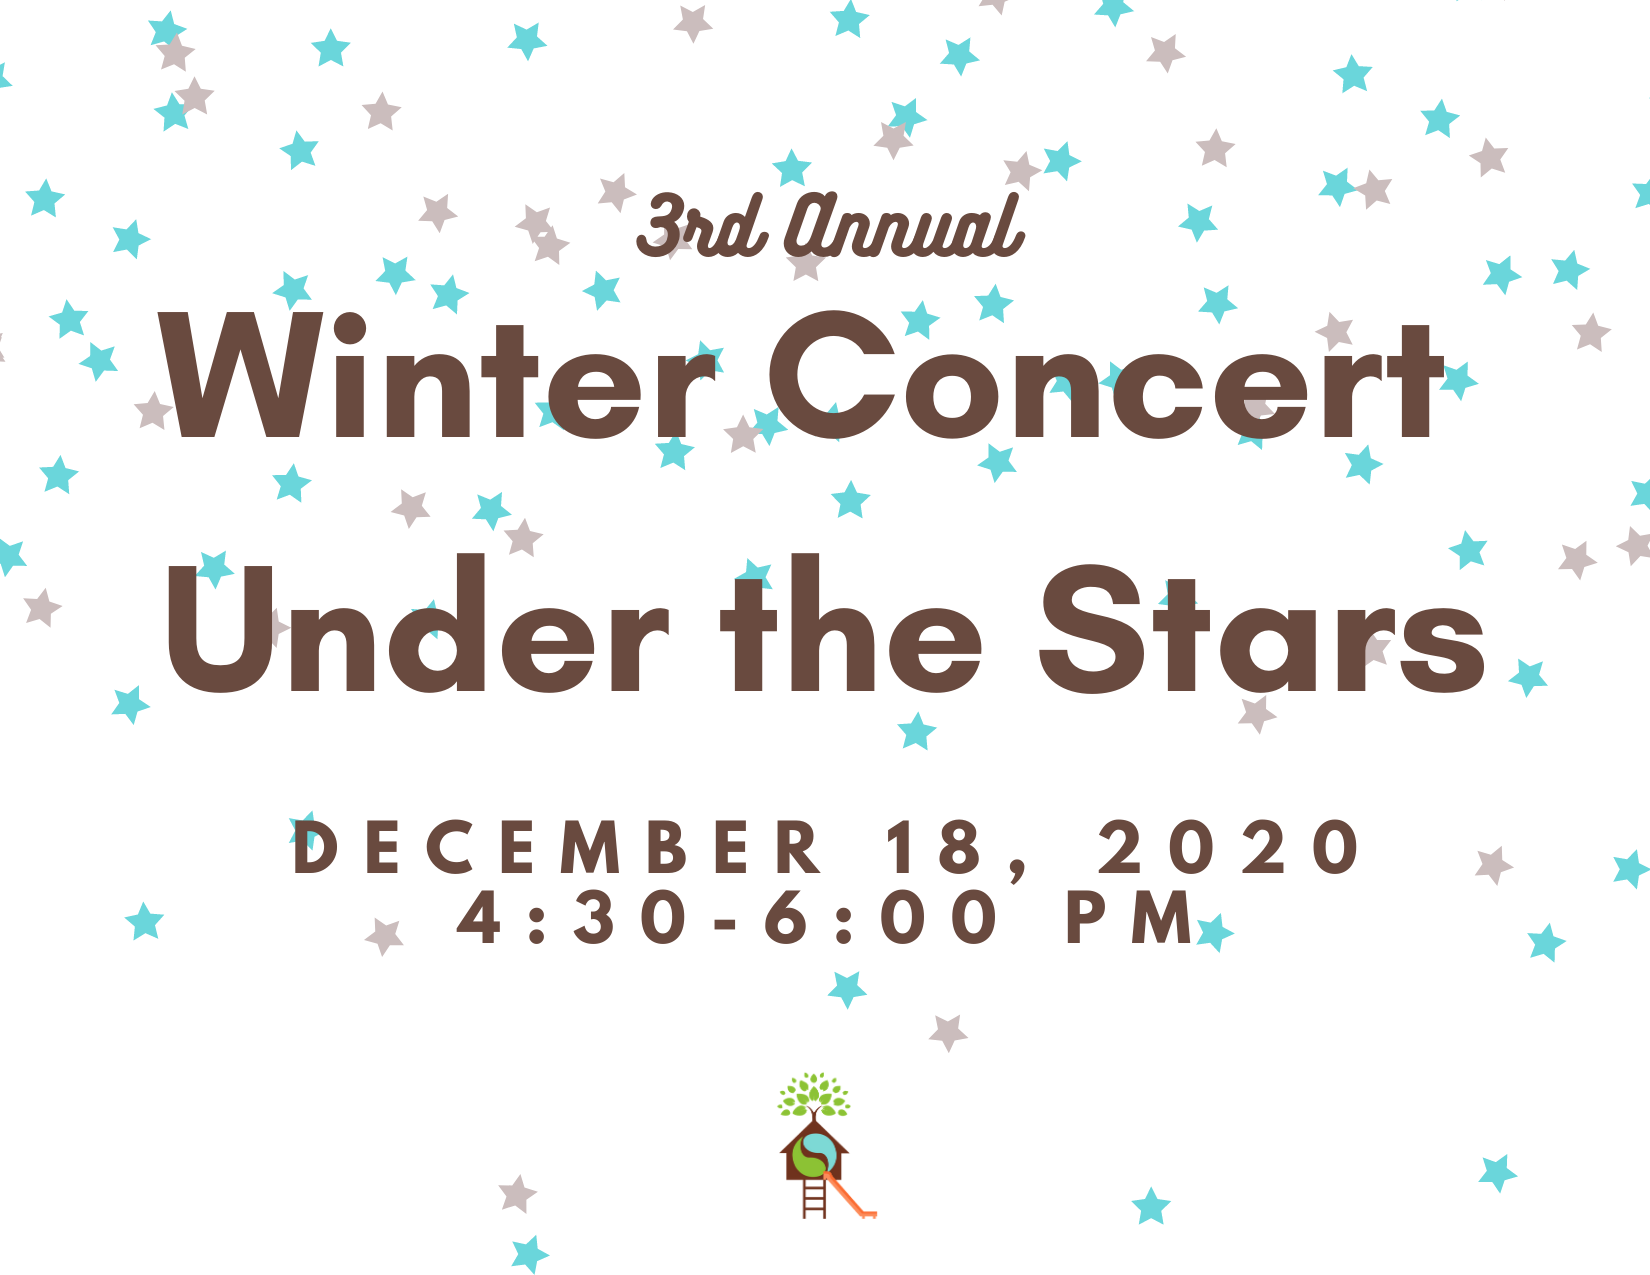 Winter Concert Web Event Image